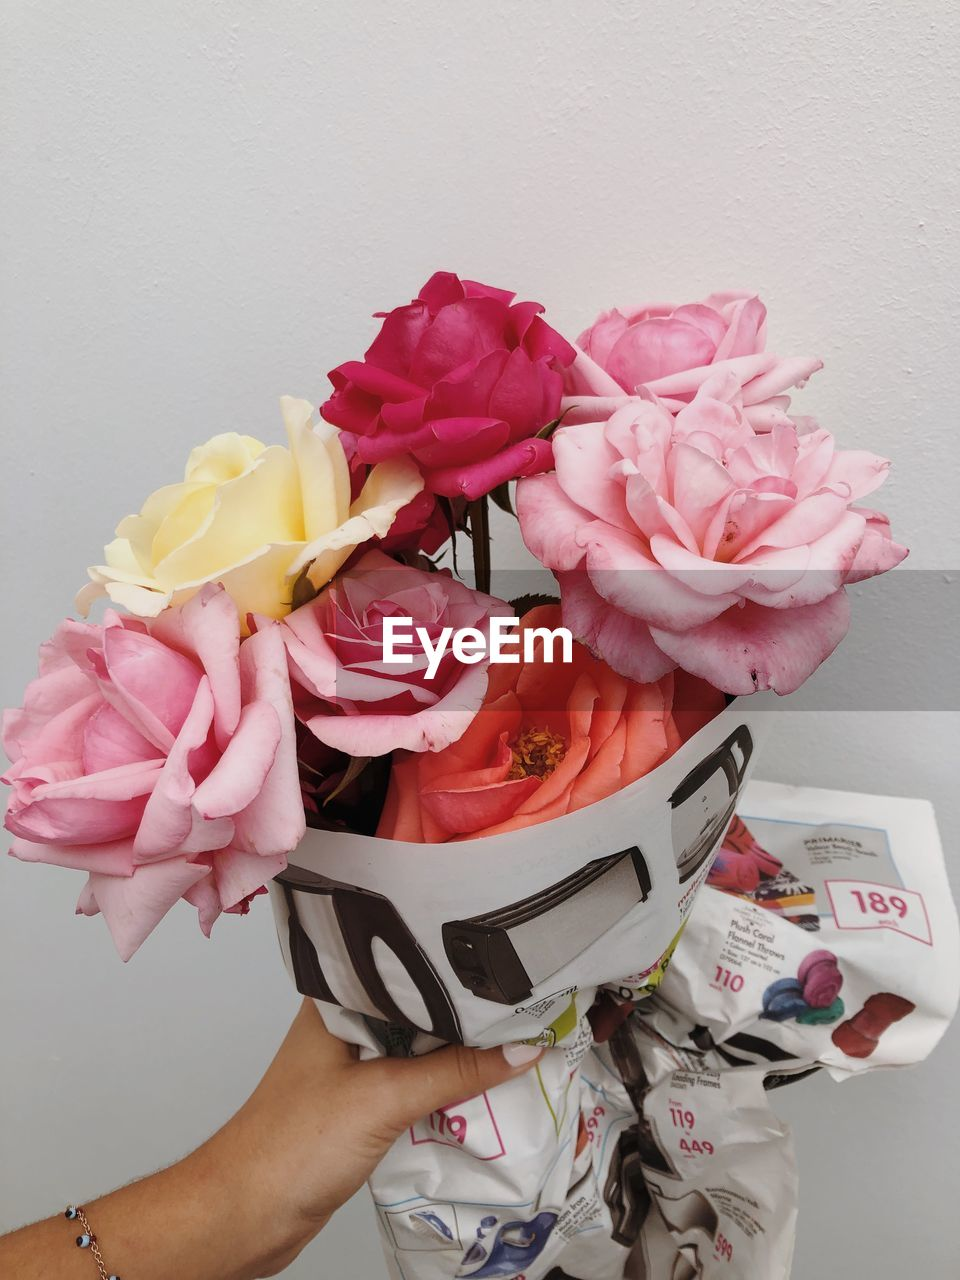 CLOSE-UP OF HAND HOLDING BOUQUET OF ROSE